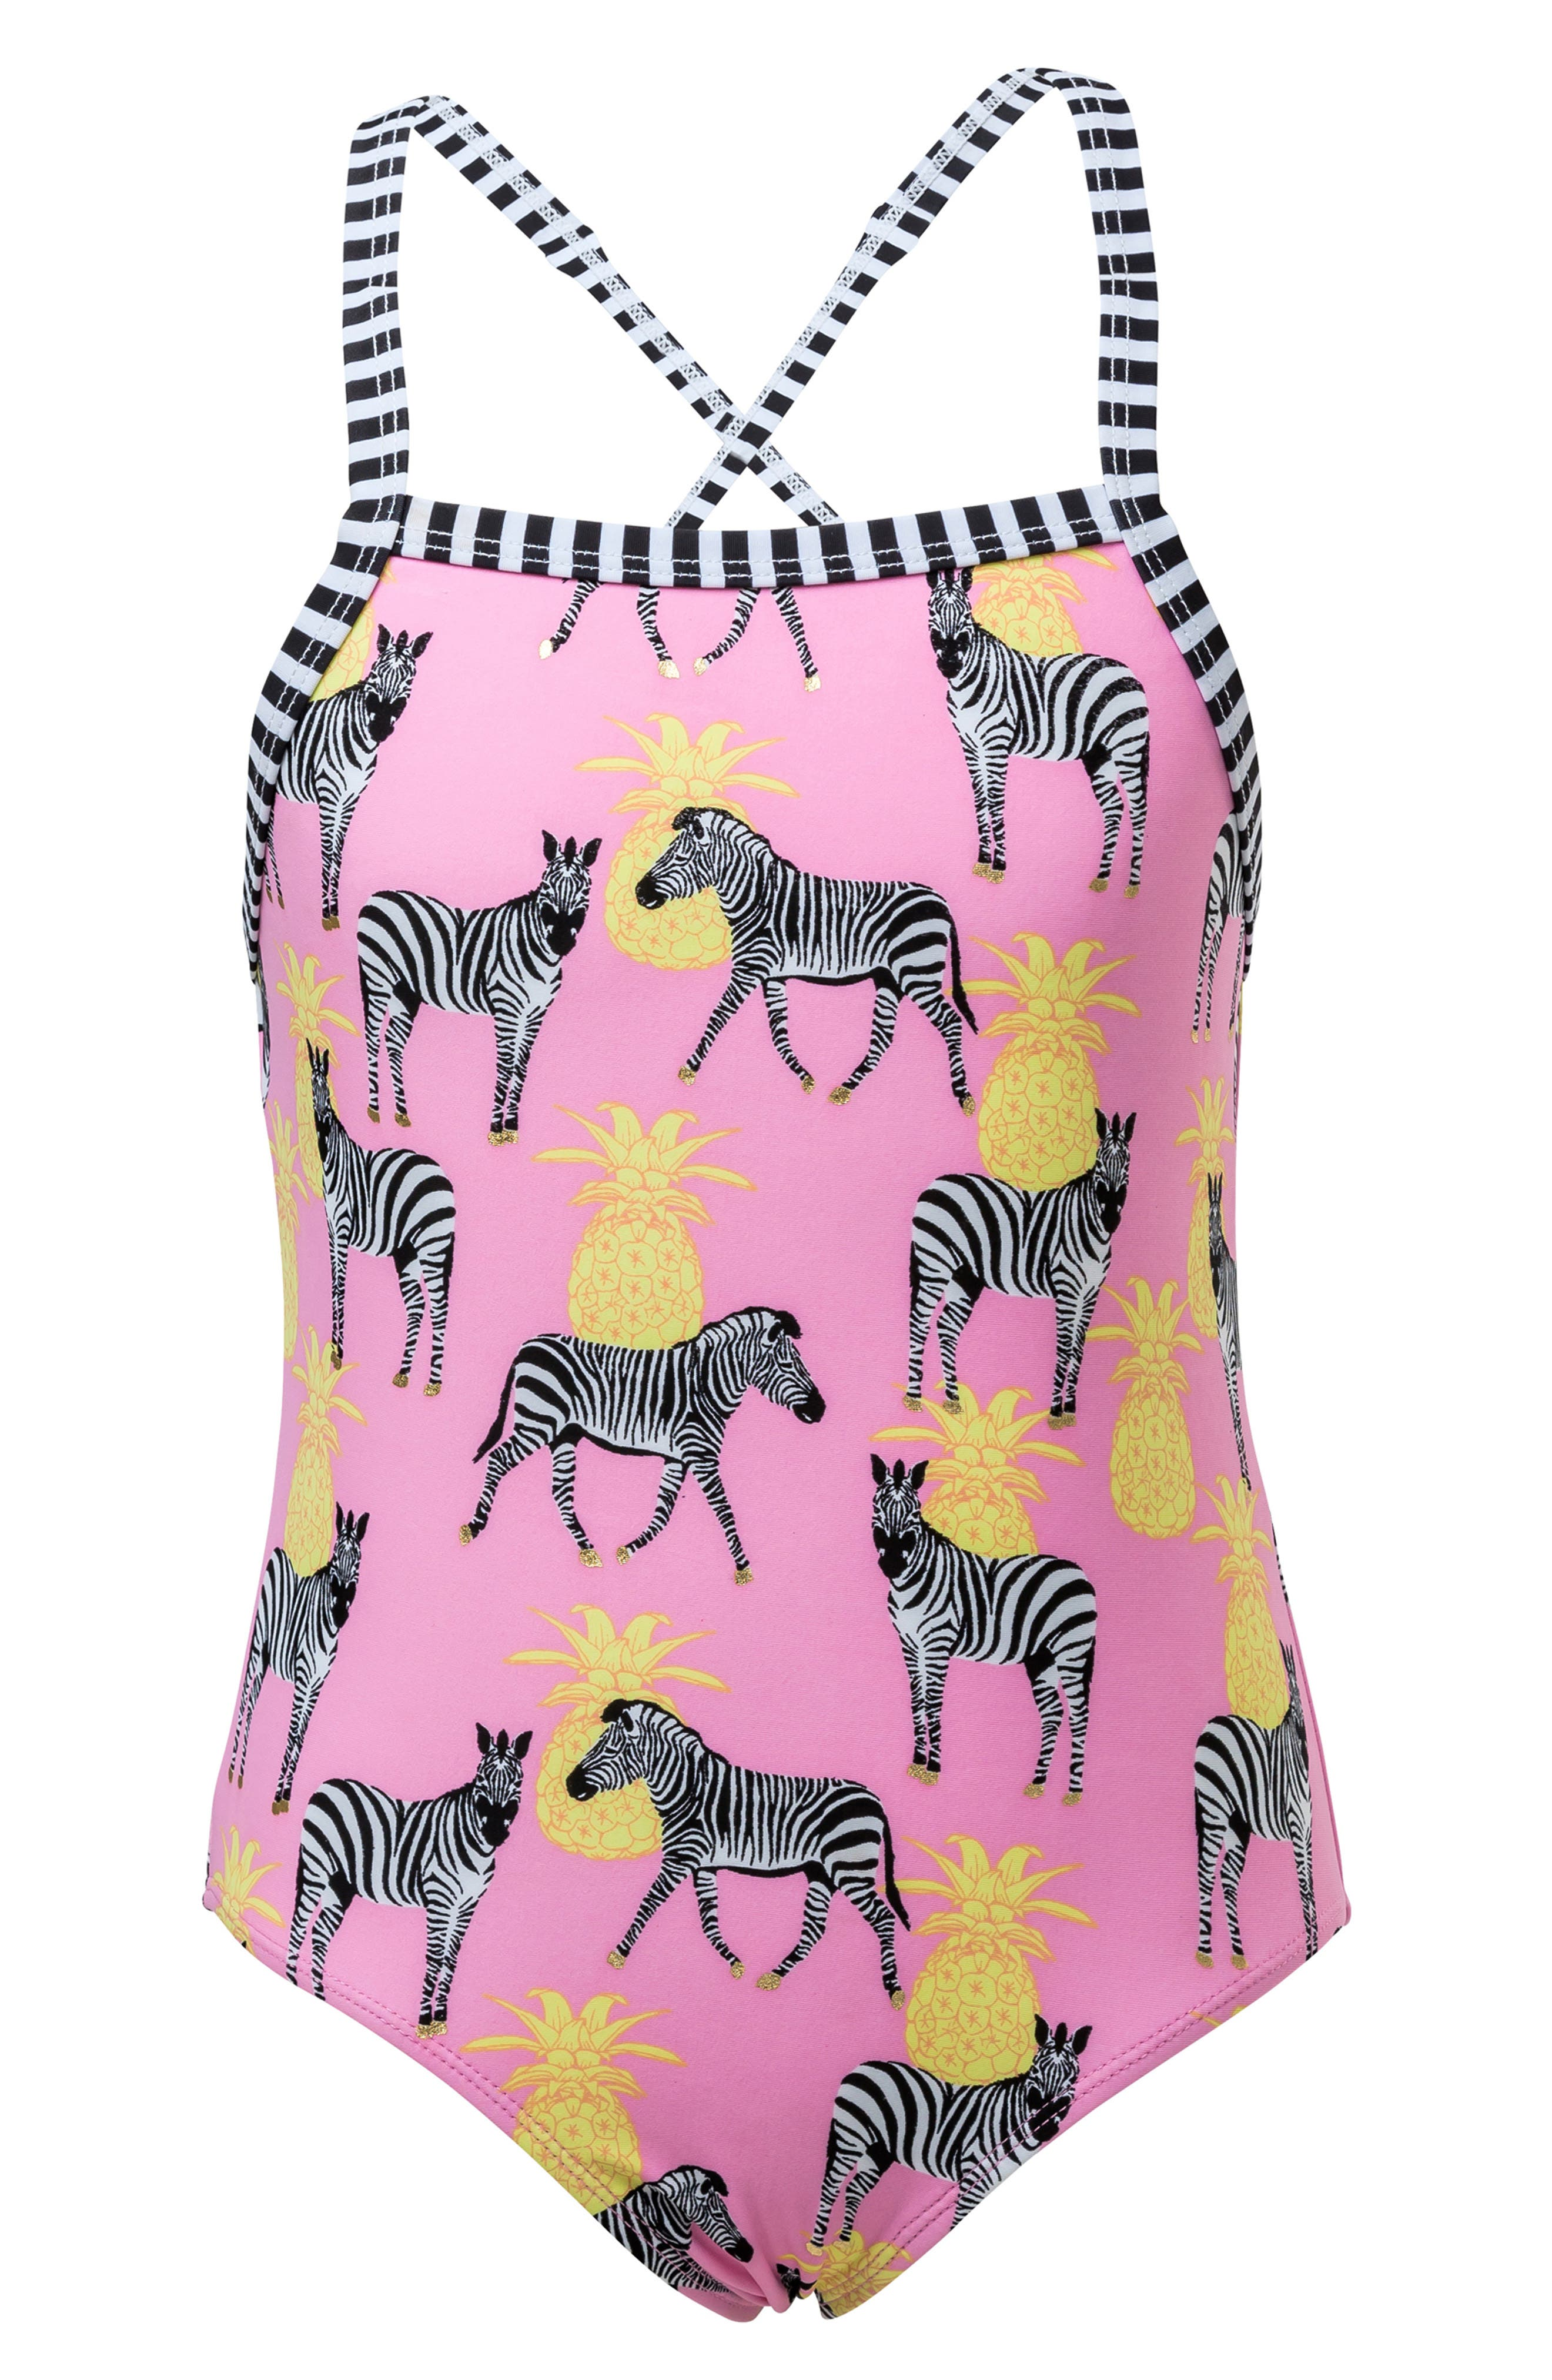 Zebra Pineapple One-Piece Swimsuit,                             Main thumbnail 1, color,                             PINK/ YELLOW/ BLACK